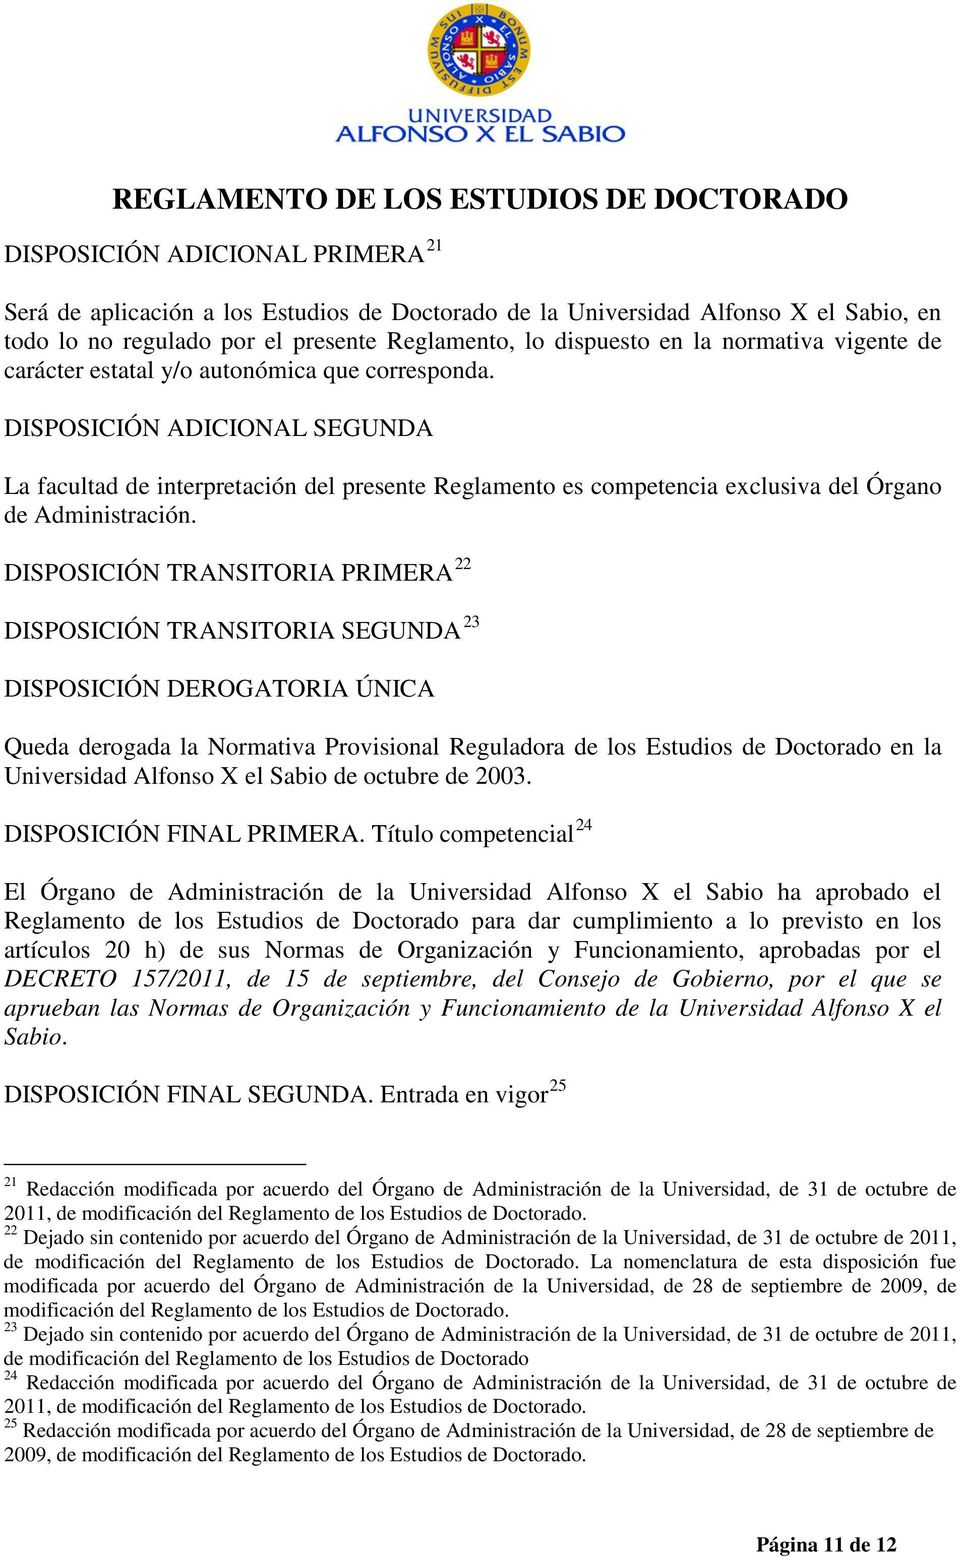 DISPOSICIÓN TRANSITORIA PRIMERA 22 DISPOSICIÓN TRANSITORIA SEGUNDA 23 DISPOSICIÓN DEROGATORIA ÚNICA Queda derogada la Normativa Provisional Reguladora de los Estudios de Doctorado en la Universidad